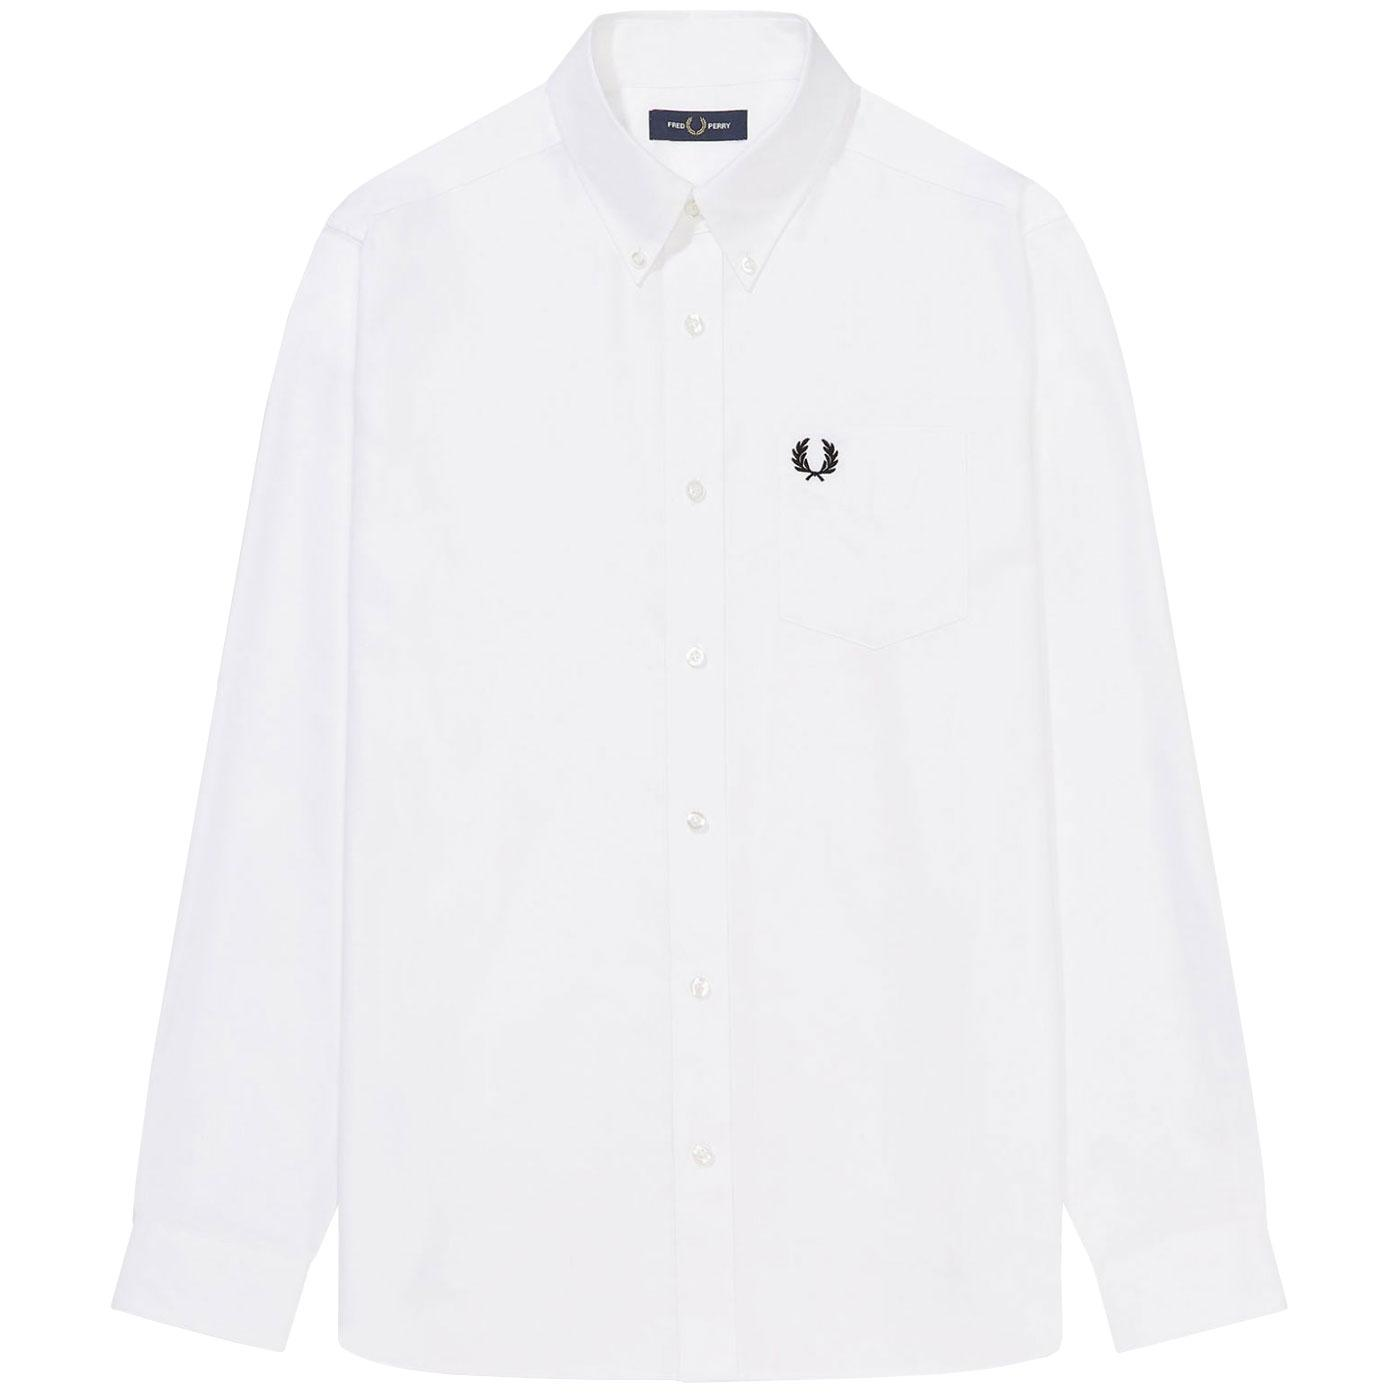 FRED PERRY Mens Button Down L/S Oxford Shirt WHITE